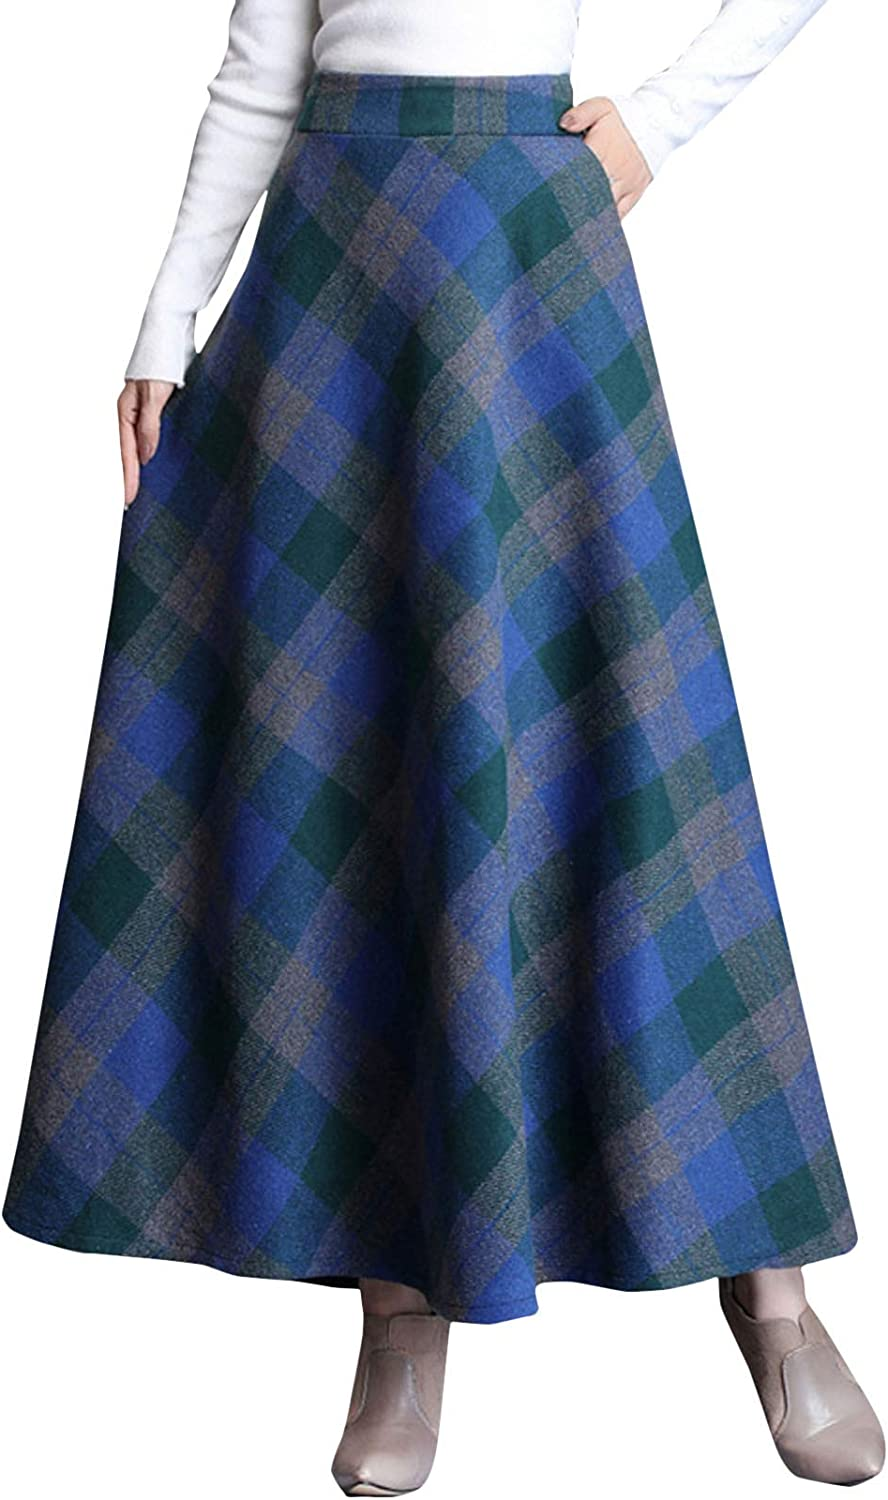 1950s Swing Skirt, Poodle Skirt, Pencil Skirts Flygo Womens Winter Warm Wool Plaid A-Line Pleated Midi Long Skirt Back Elastic $34.98 AT vintagedancer.com